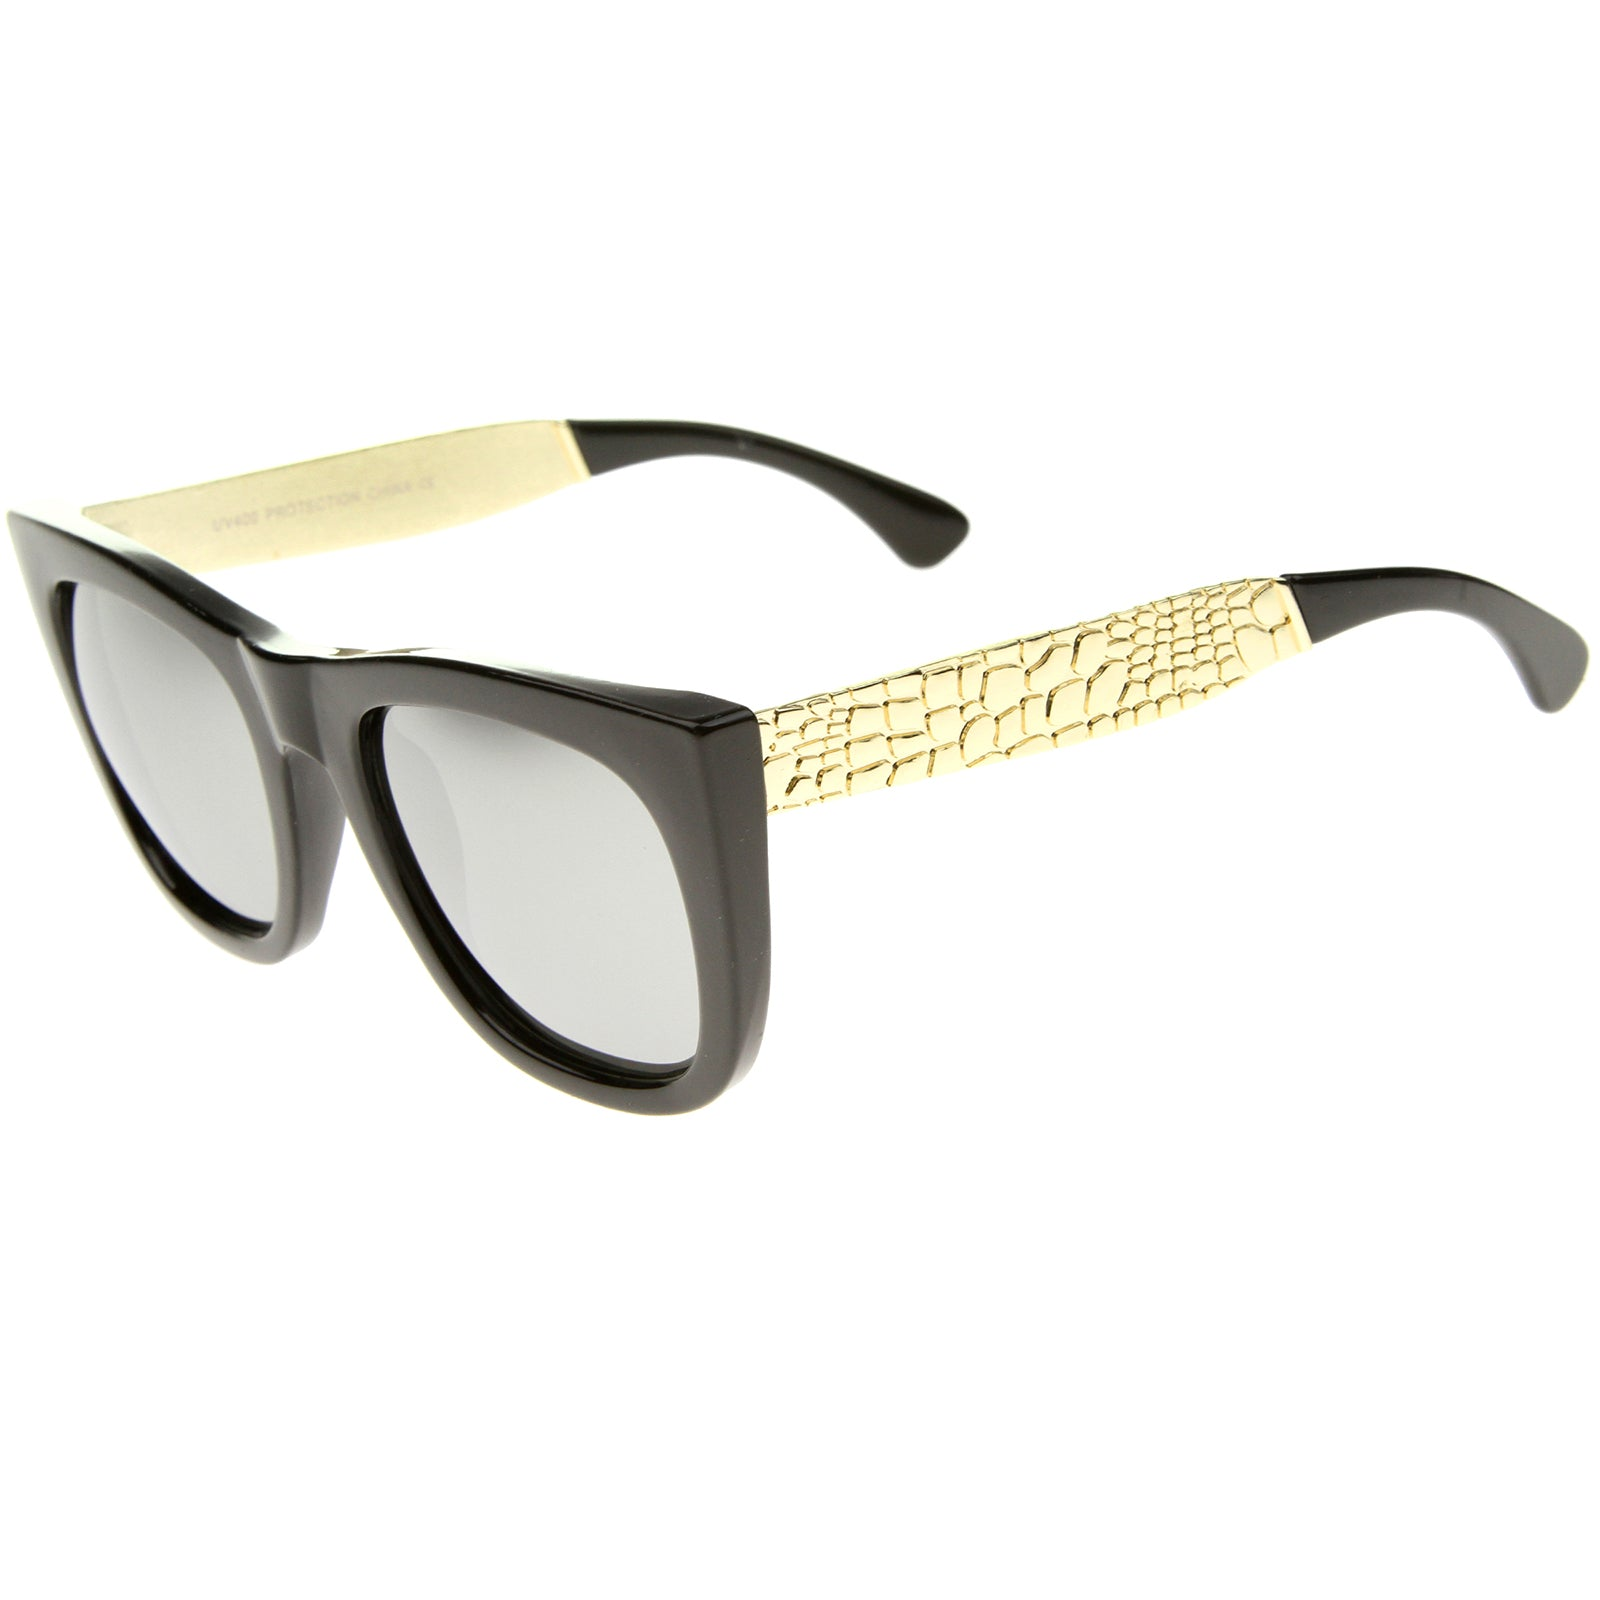 High Fashion Alligator Metal Temple Mirrored Lens Flat Top Sunglasses - sunglass.la - 3